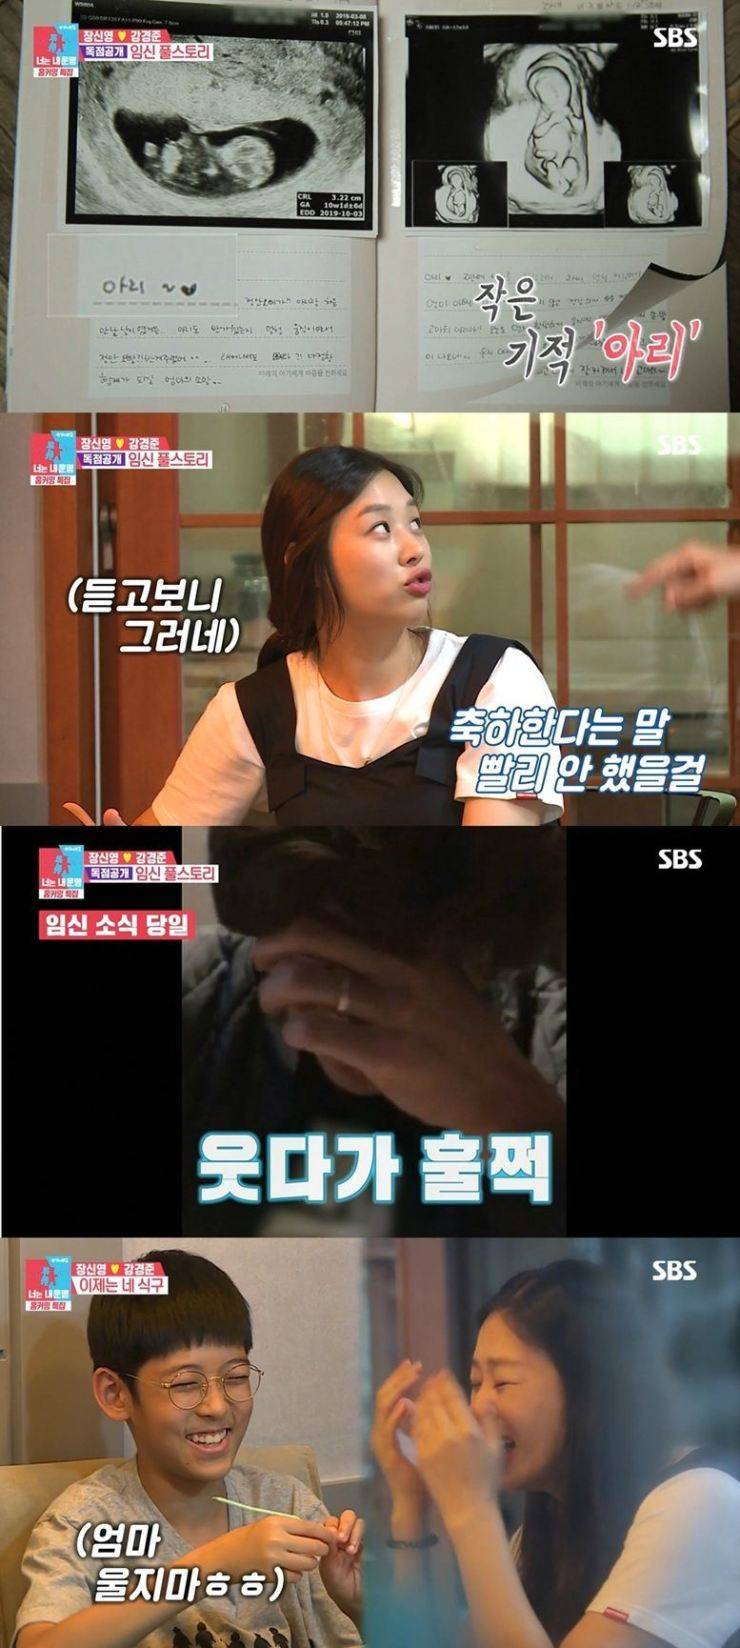 Photos show ultrasonic images of the fetus in actress Jang Shin-young's womb; Jang shedding tears of happiness; and smiling while talking with her son. Captured from the July 15 edition of SBS TV's reality program 'Same Bed Different Dreams'